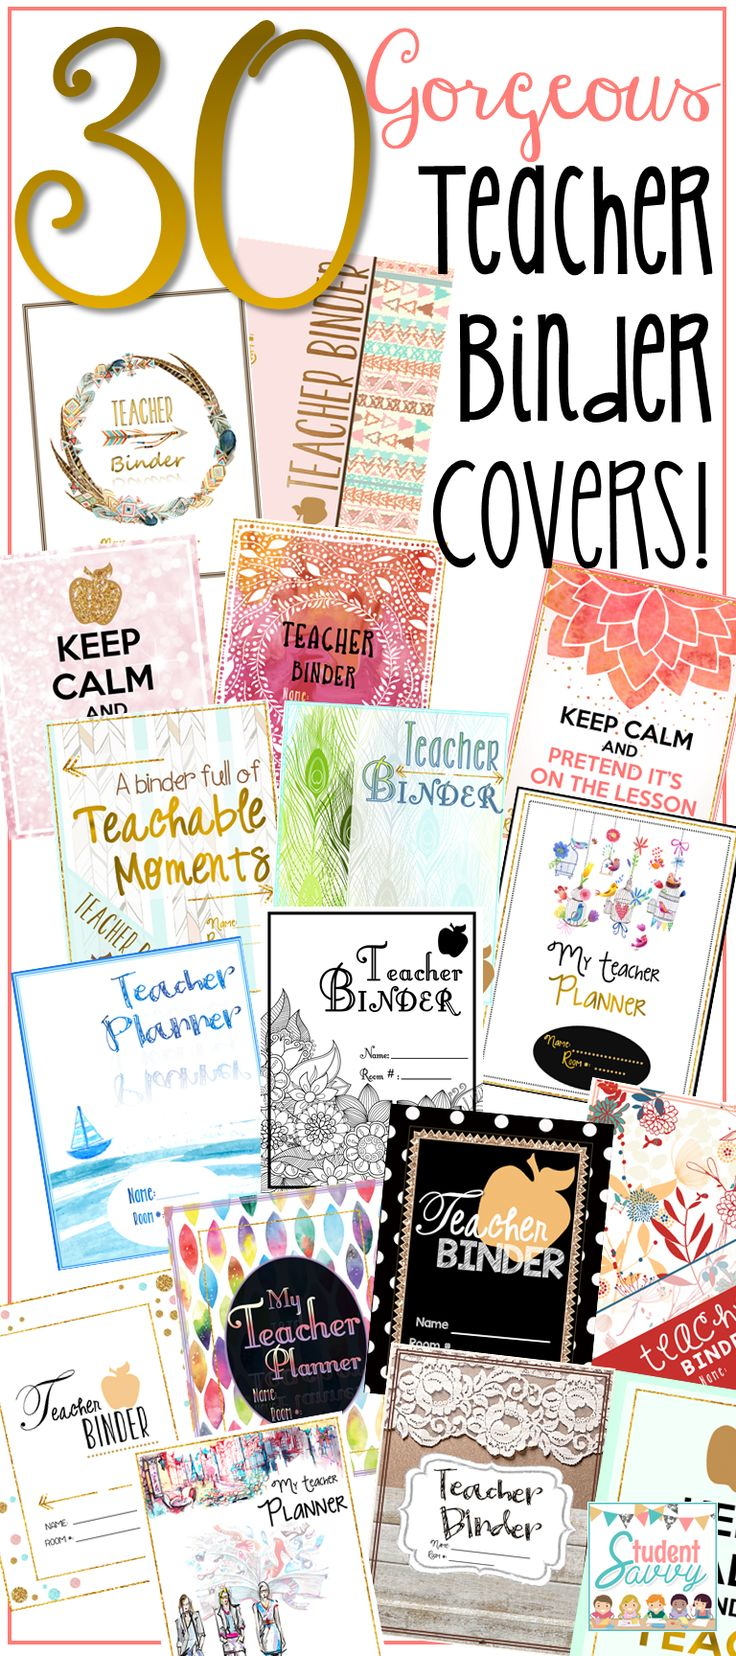 Teacher Binder for 2017 - 2018. SO many different binder styles (spines included) to choose from! This resource is updated every year! It also contains teacher planning pages (full calendar, lesson planning, grade book, centers, attendance, note-taking,checklists, and much more!) - over 200 pages total!